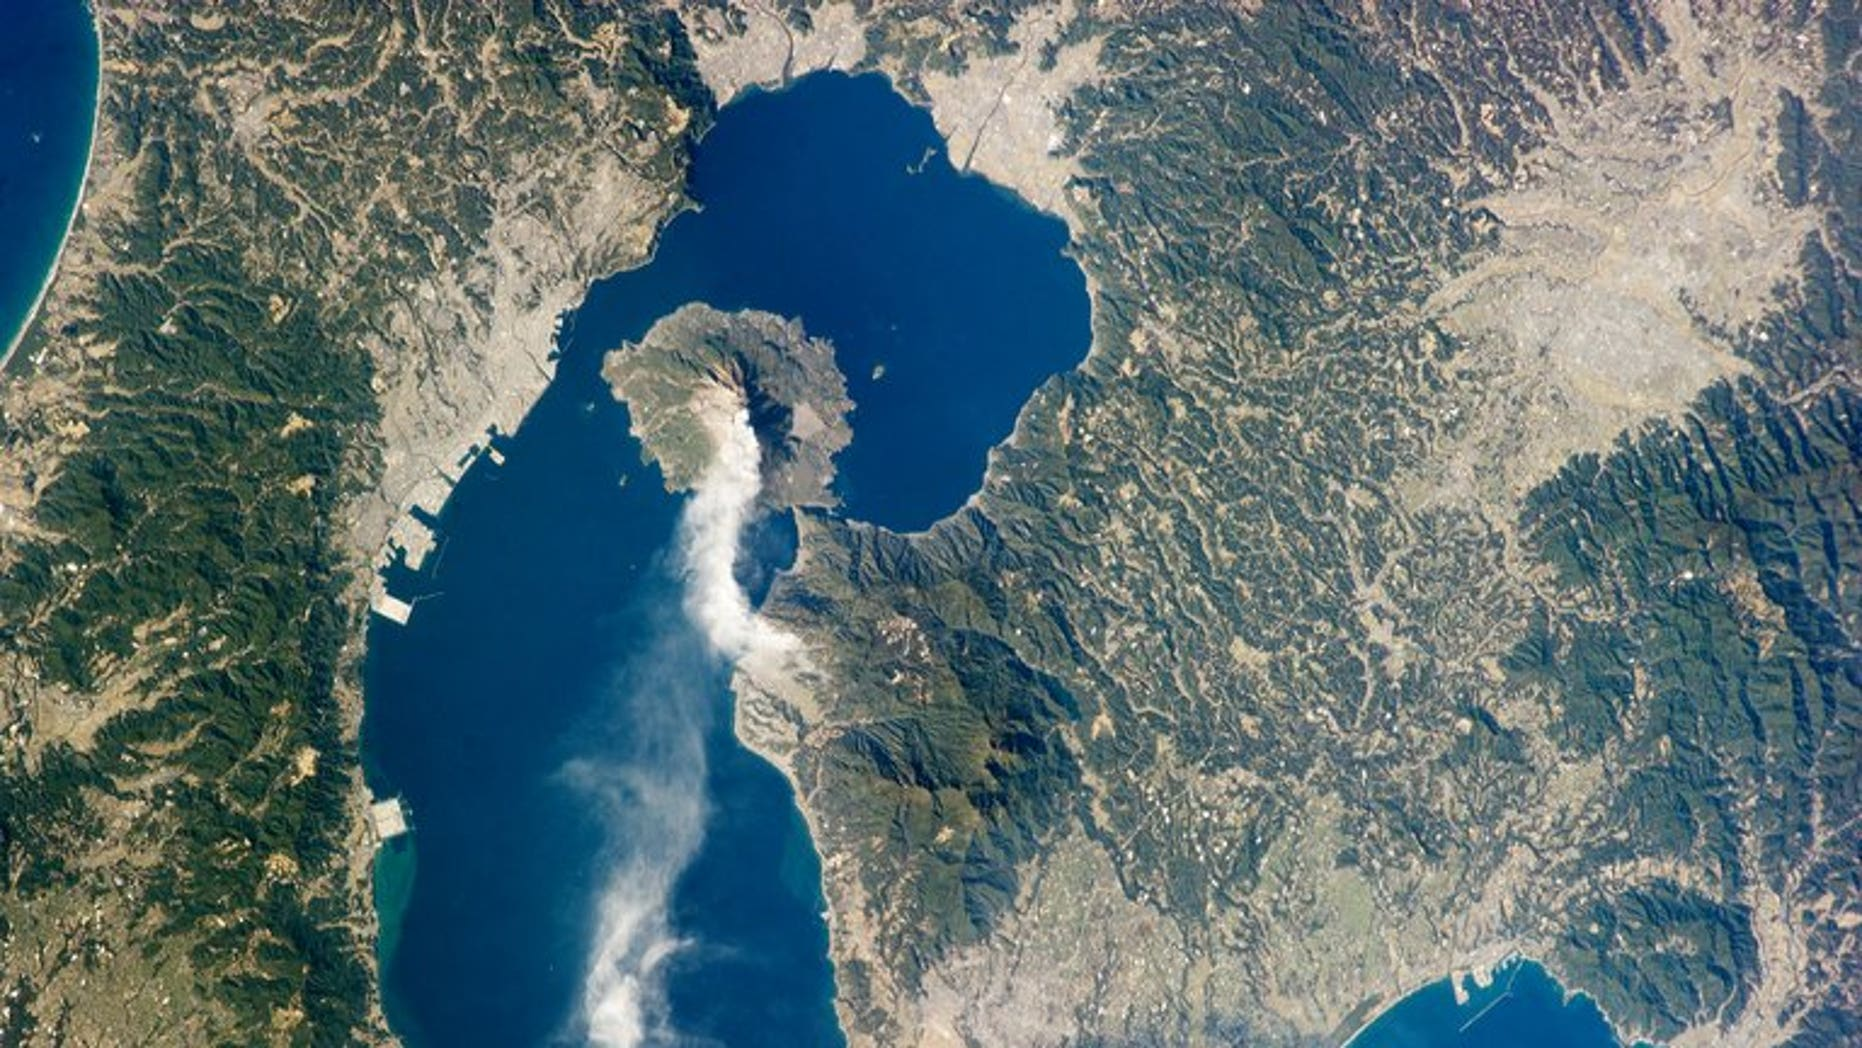 This image provided January 28, 2013 by NASA shows Japan???s Sakurajima volcano. The volcano in southern Japan erupted in spectacular fashion on Sunday, spewing an ash plume up to 5,000 metres into the air, meteorological officials said, according to a report.